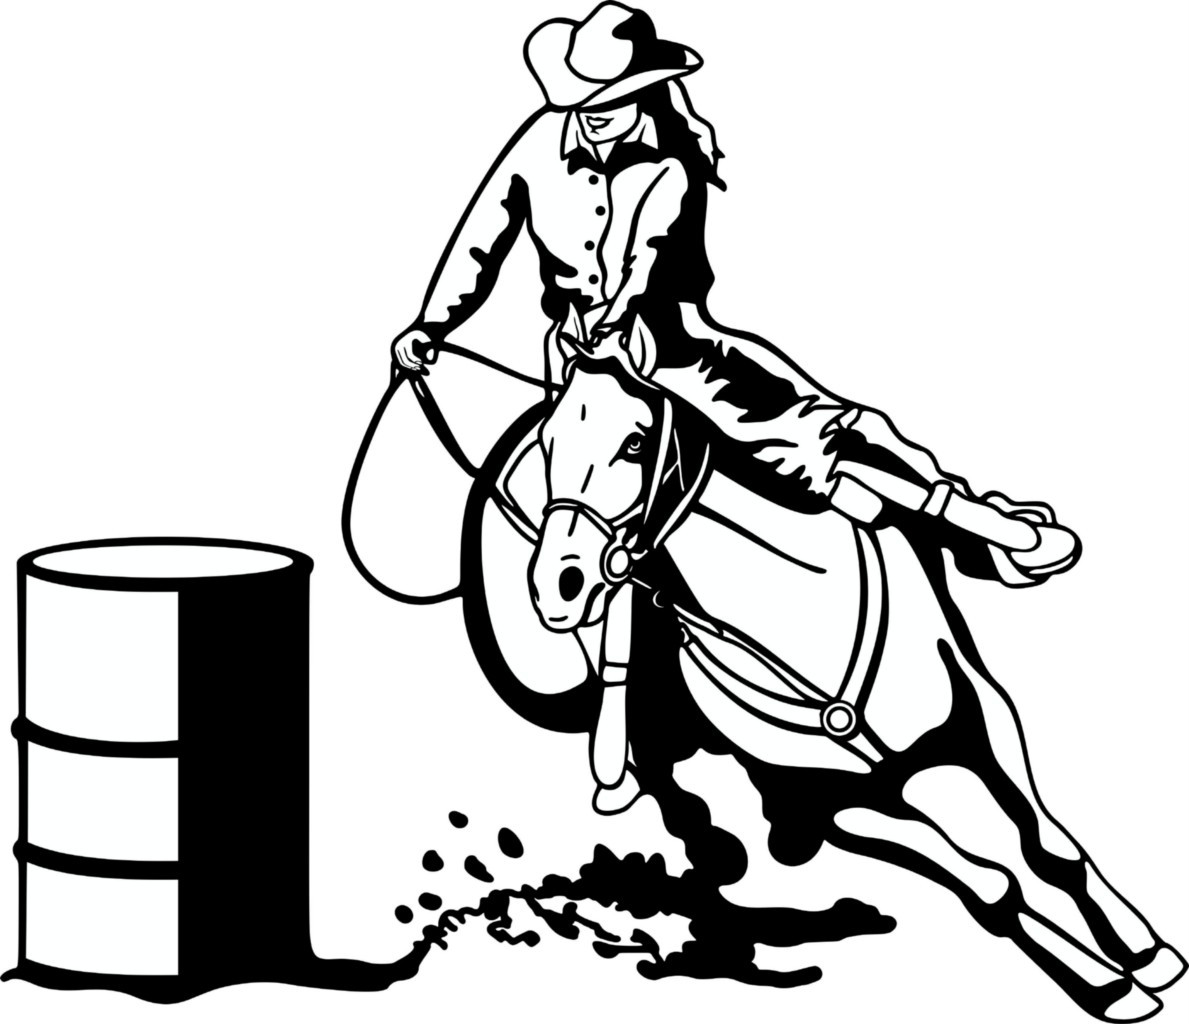 hight resolution of free barrel racing horse clipart image